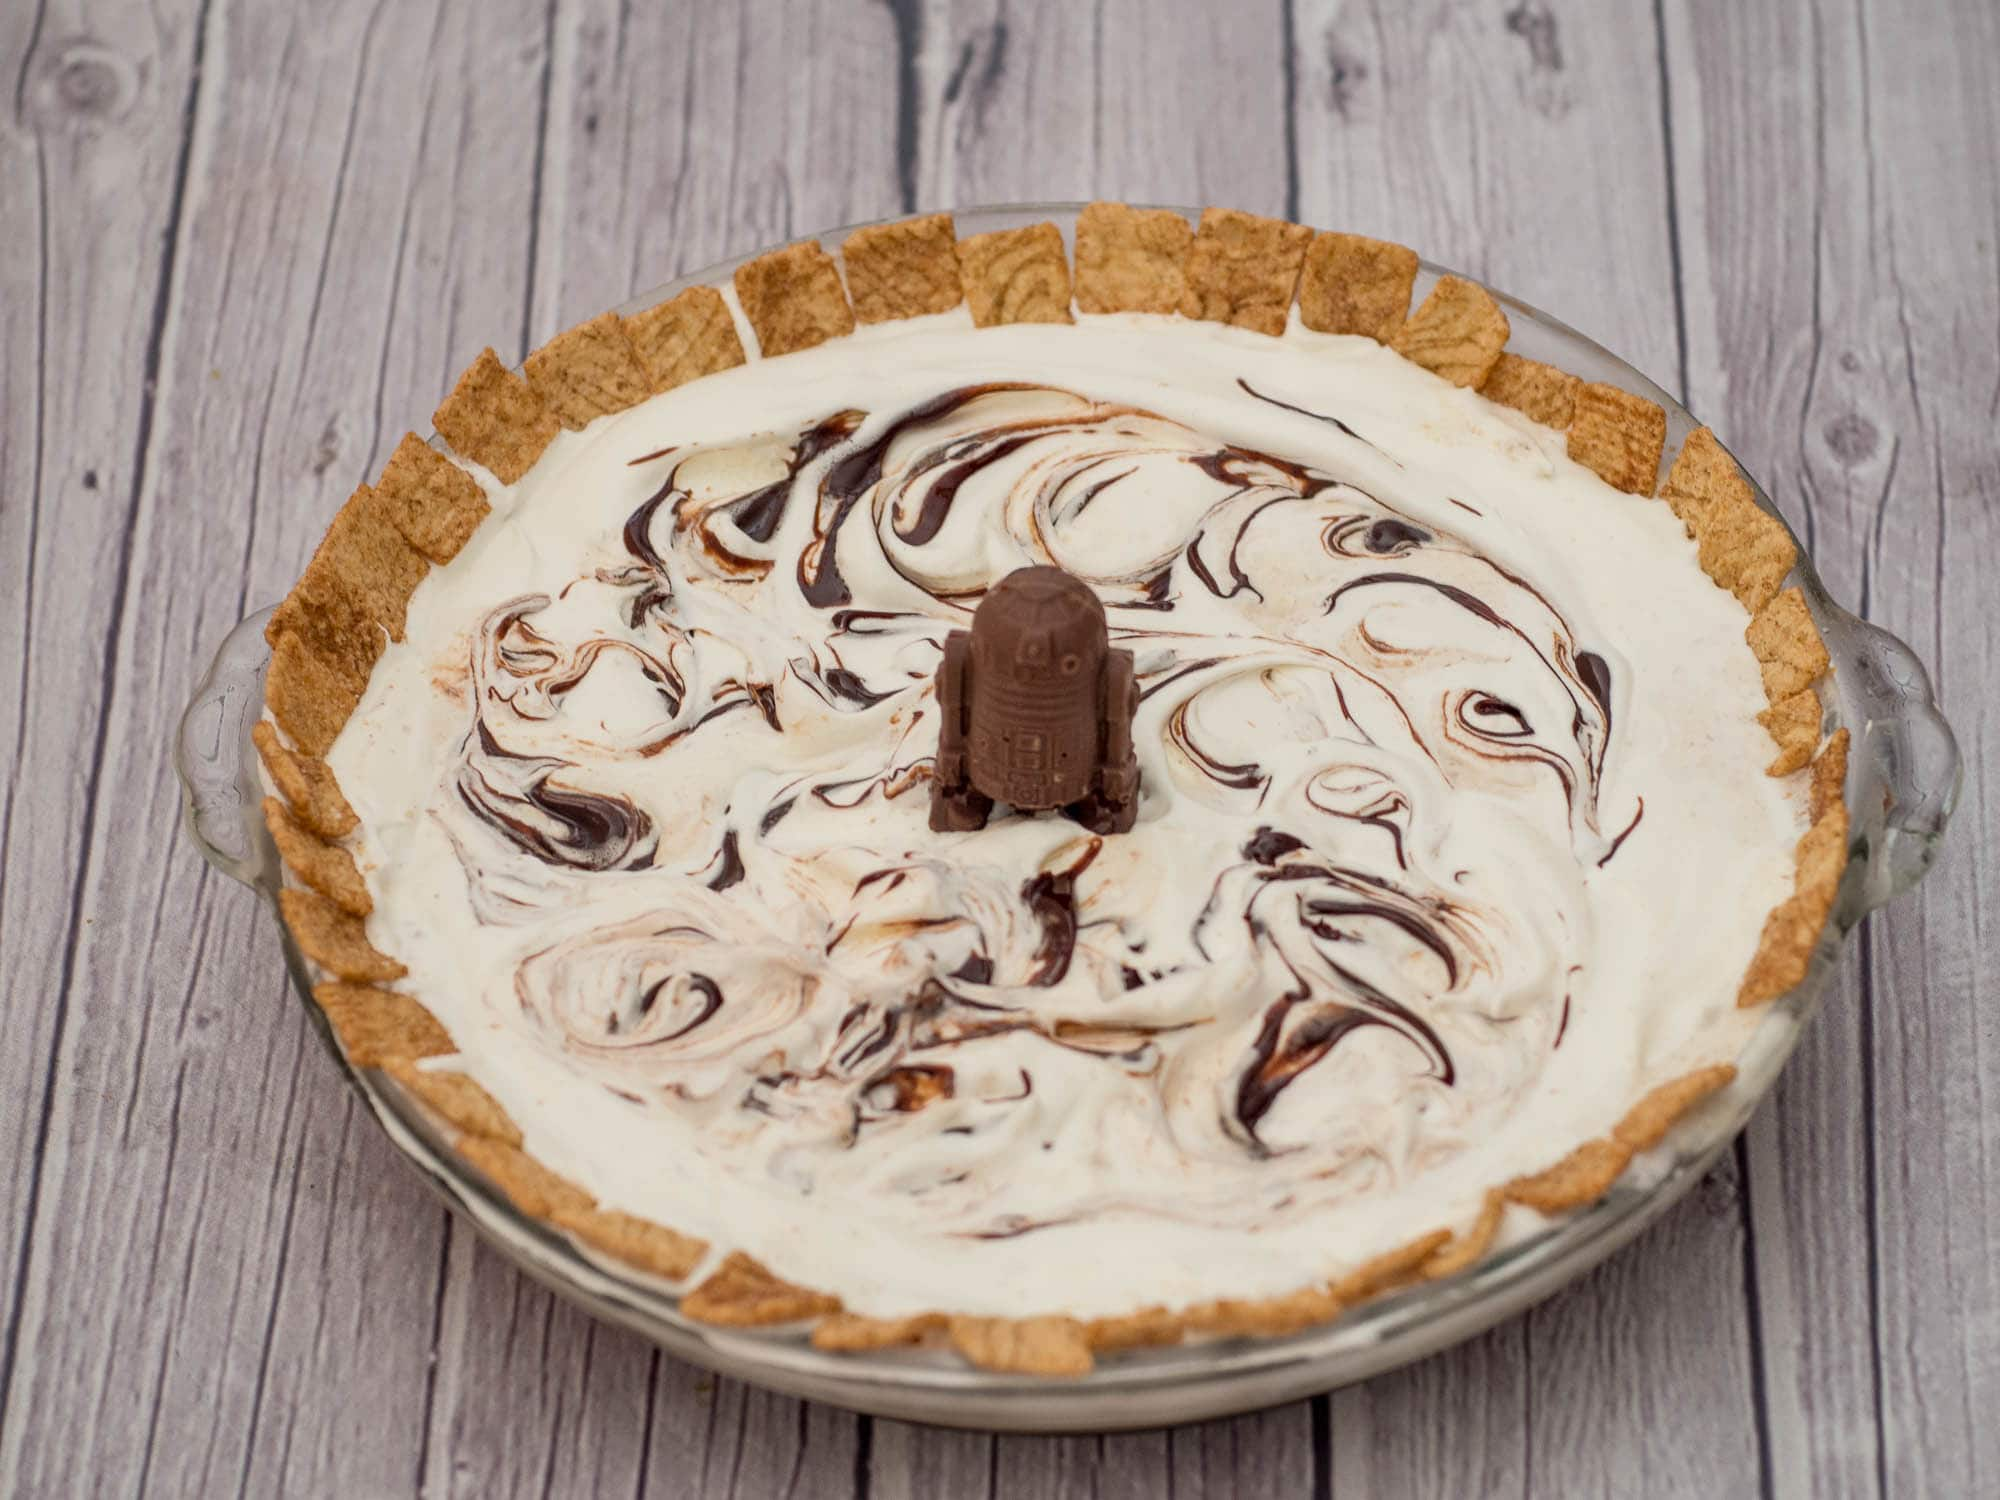 Cinnamon Ice Cream Pie - this easy to make dessert is Star Wars themed and made with Cinnamon Toast Crunch Cereal, Ice Cream, Whipped Topping and Hot Fudge. An easy family dessert!